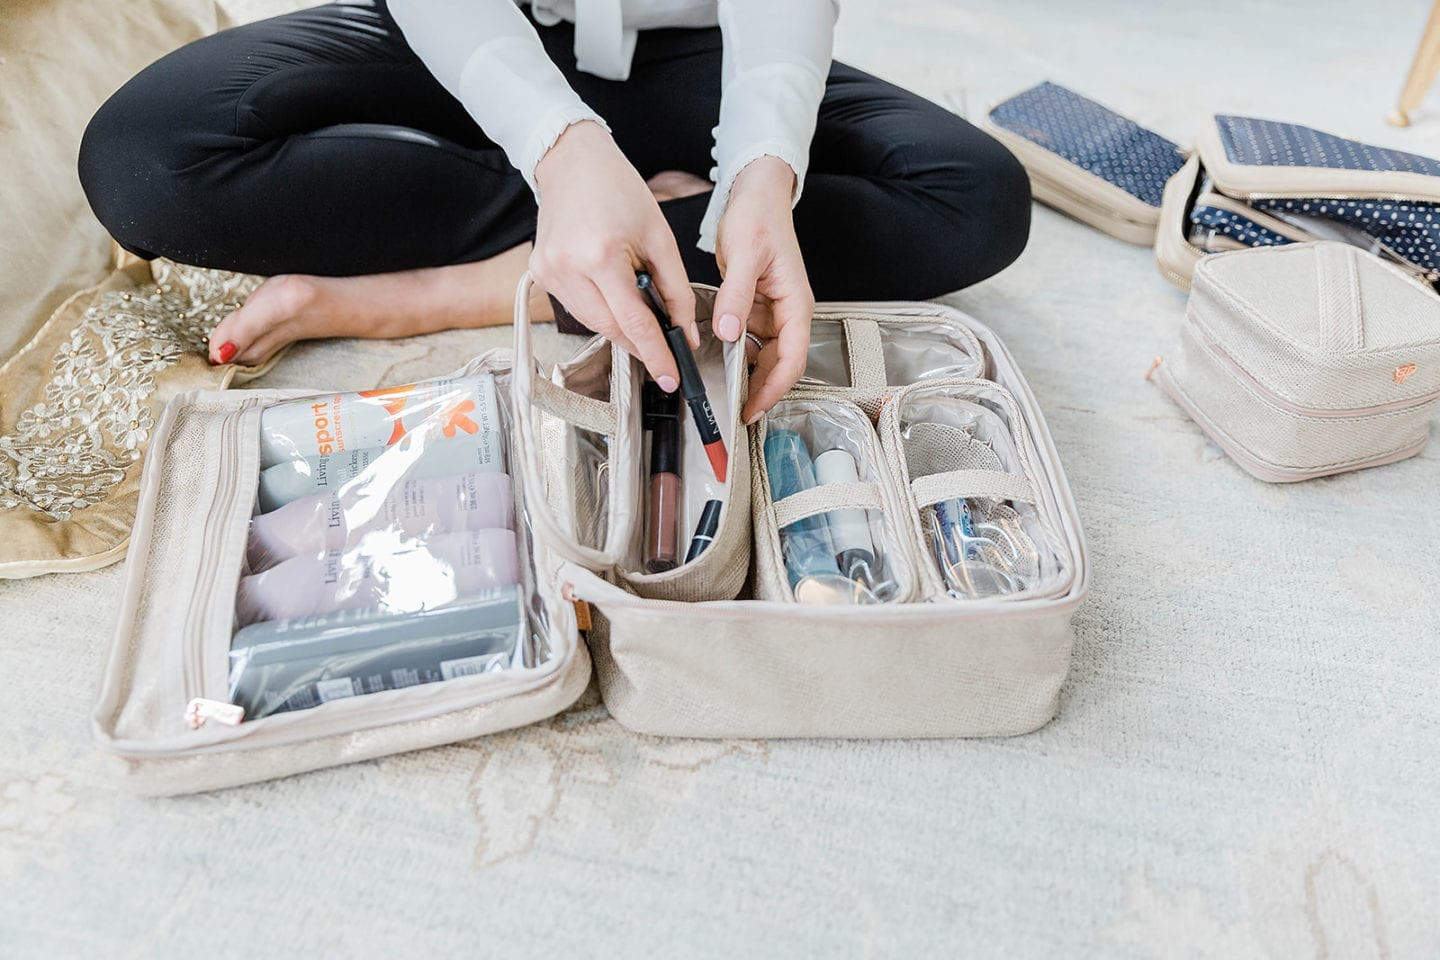 Travel cases the Kardashians use